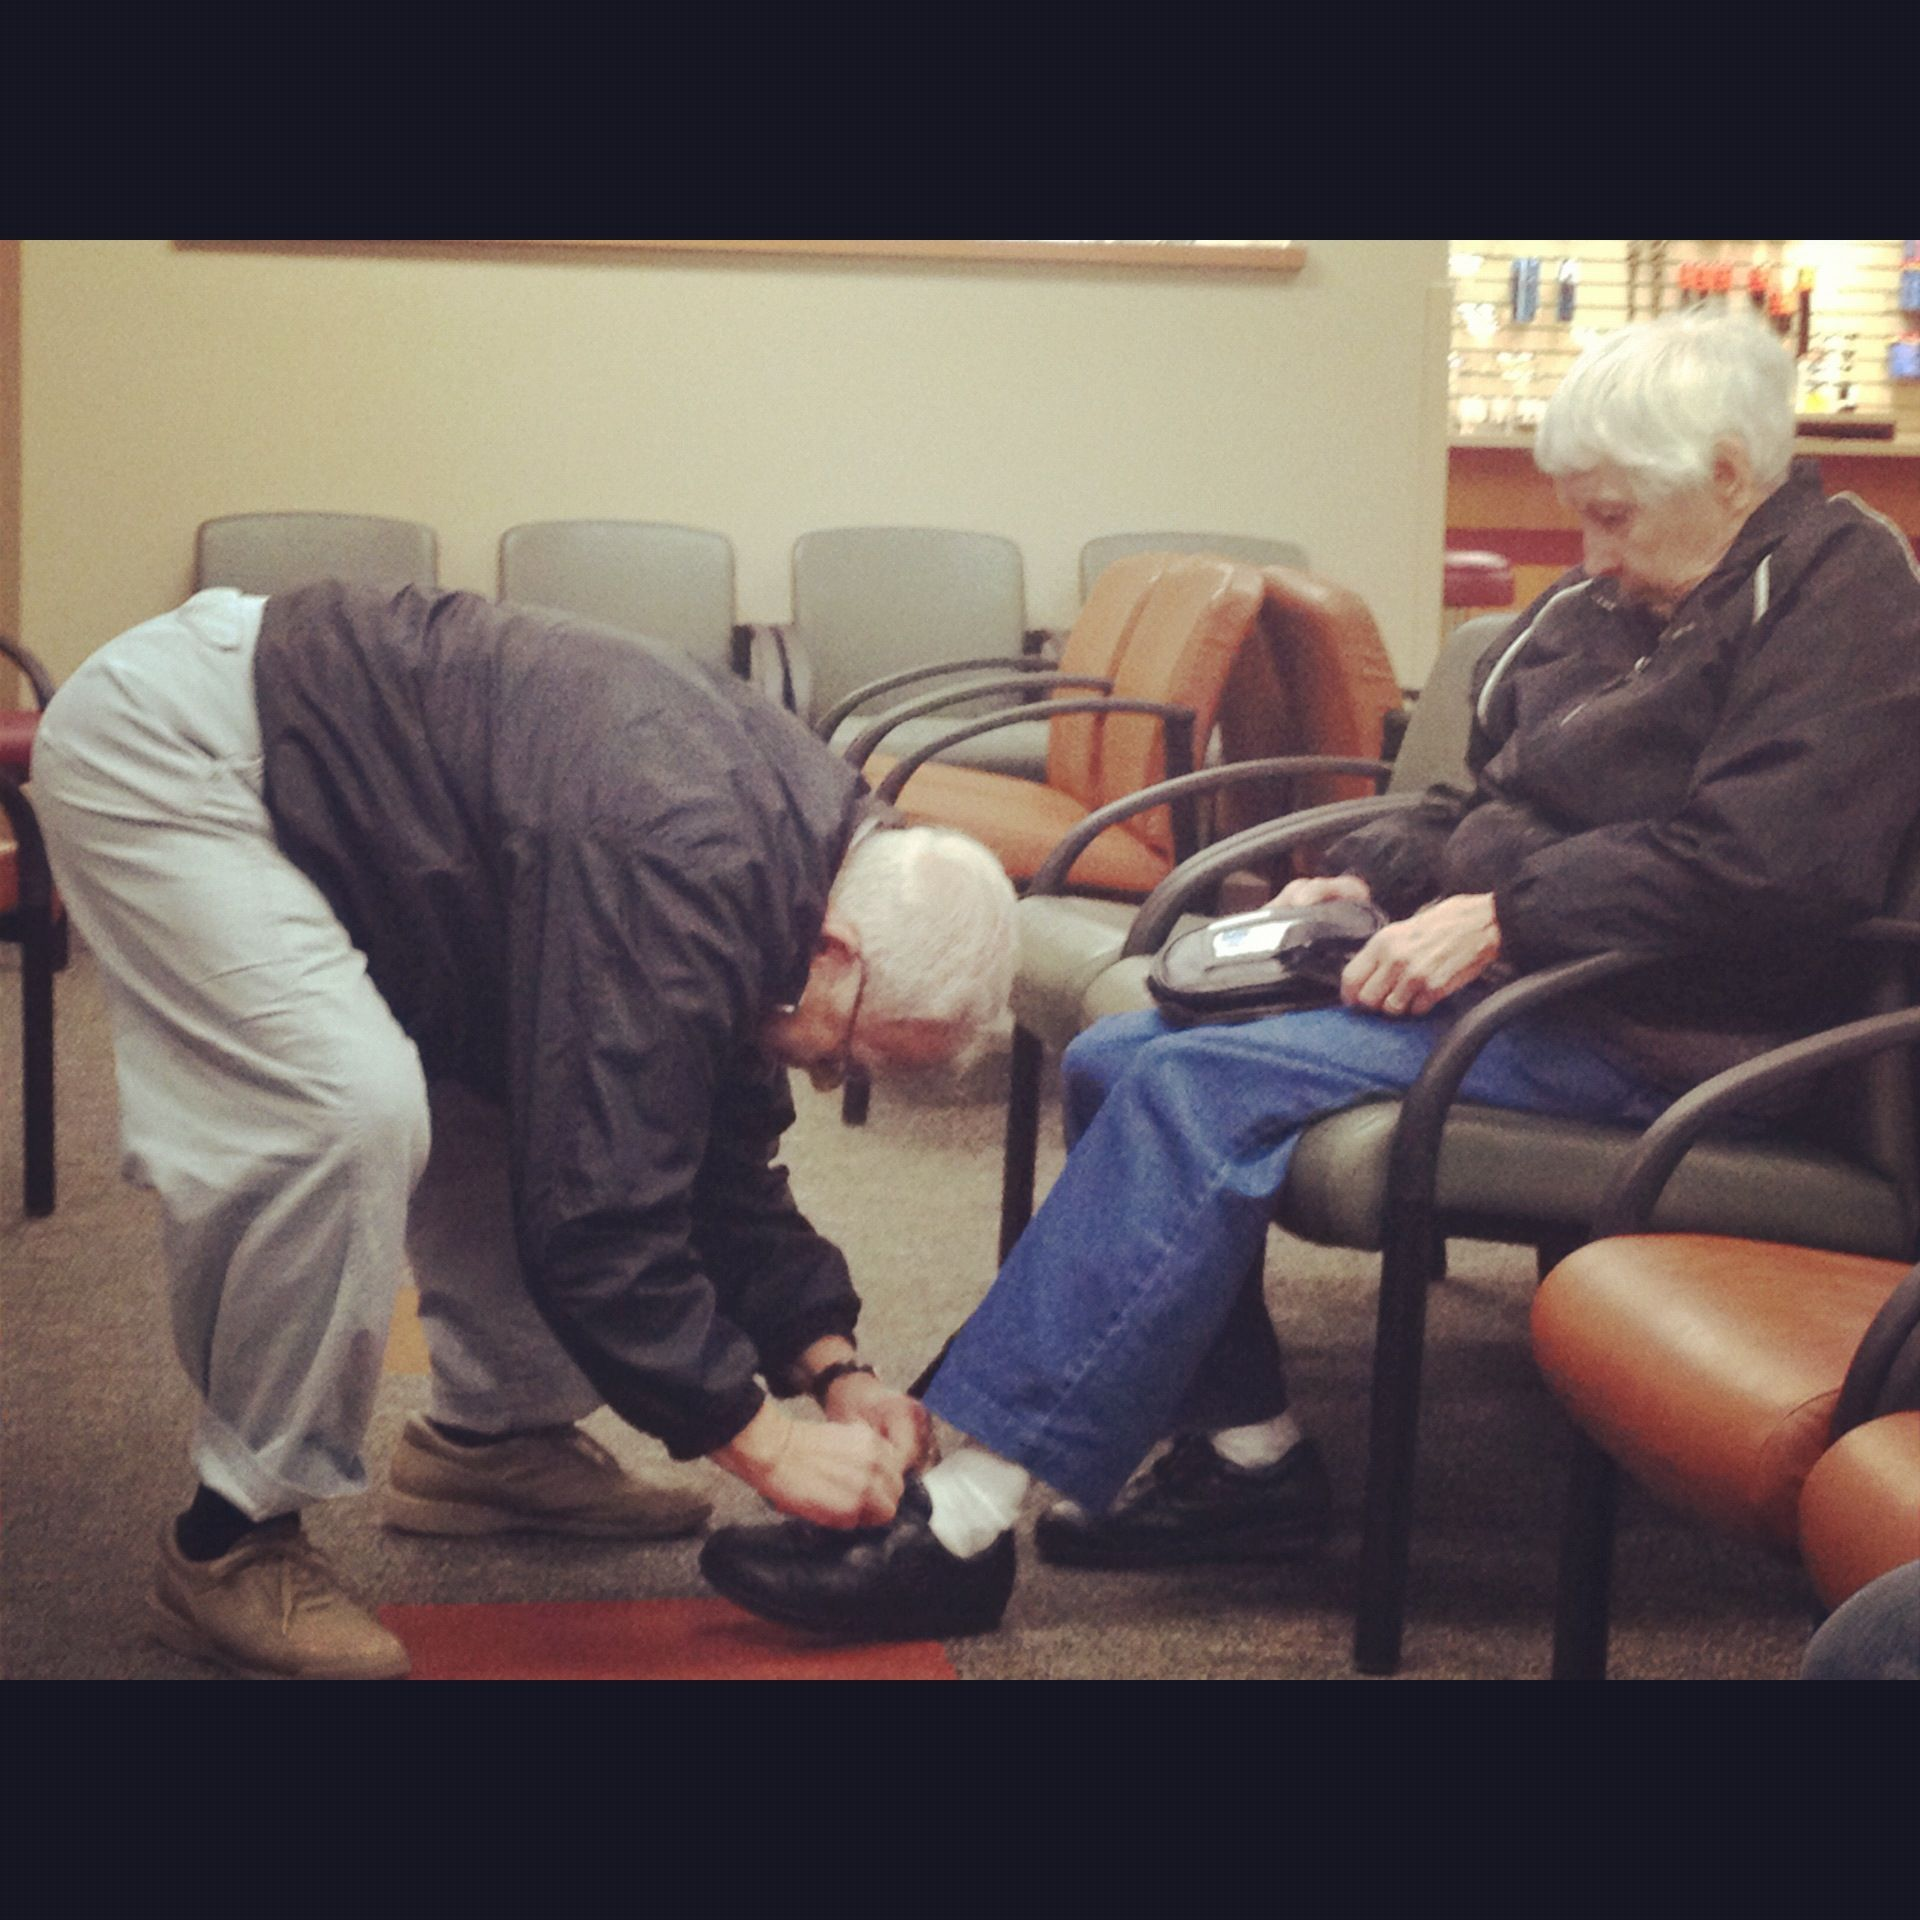 Old Age Couple Quotes: Best 25+ Old Love Ideas On Pinterest